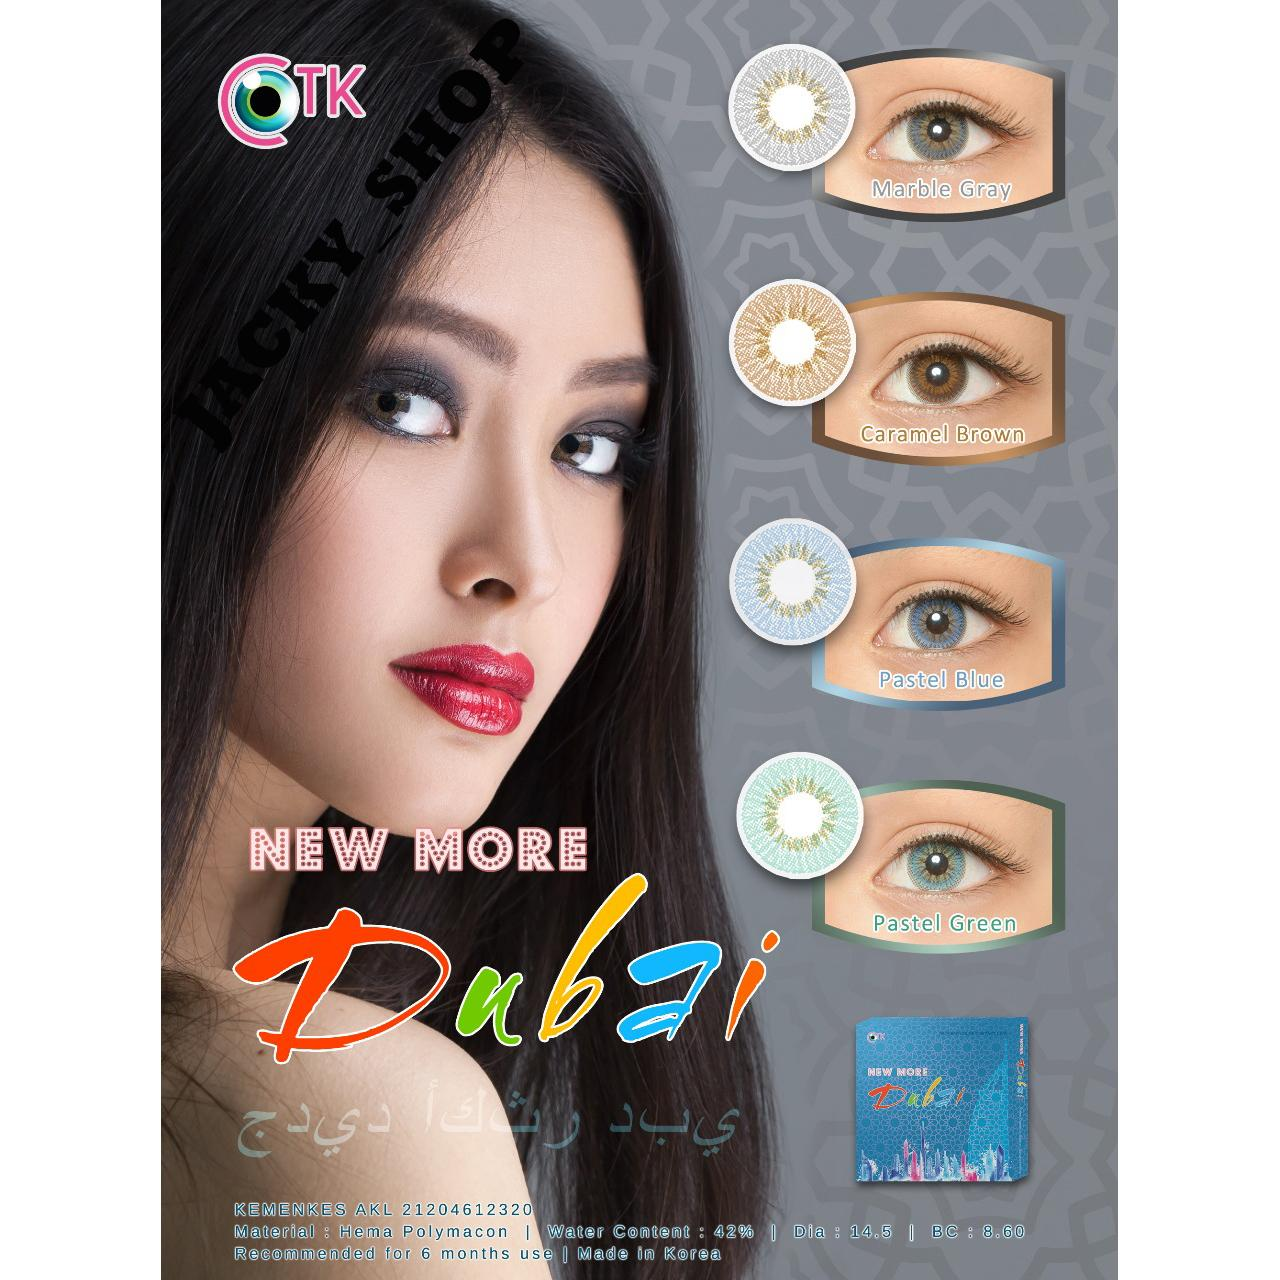 Softlens New More Dubai Diameter 14.5 mm + GRATIS Lenscase